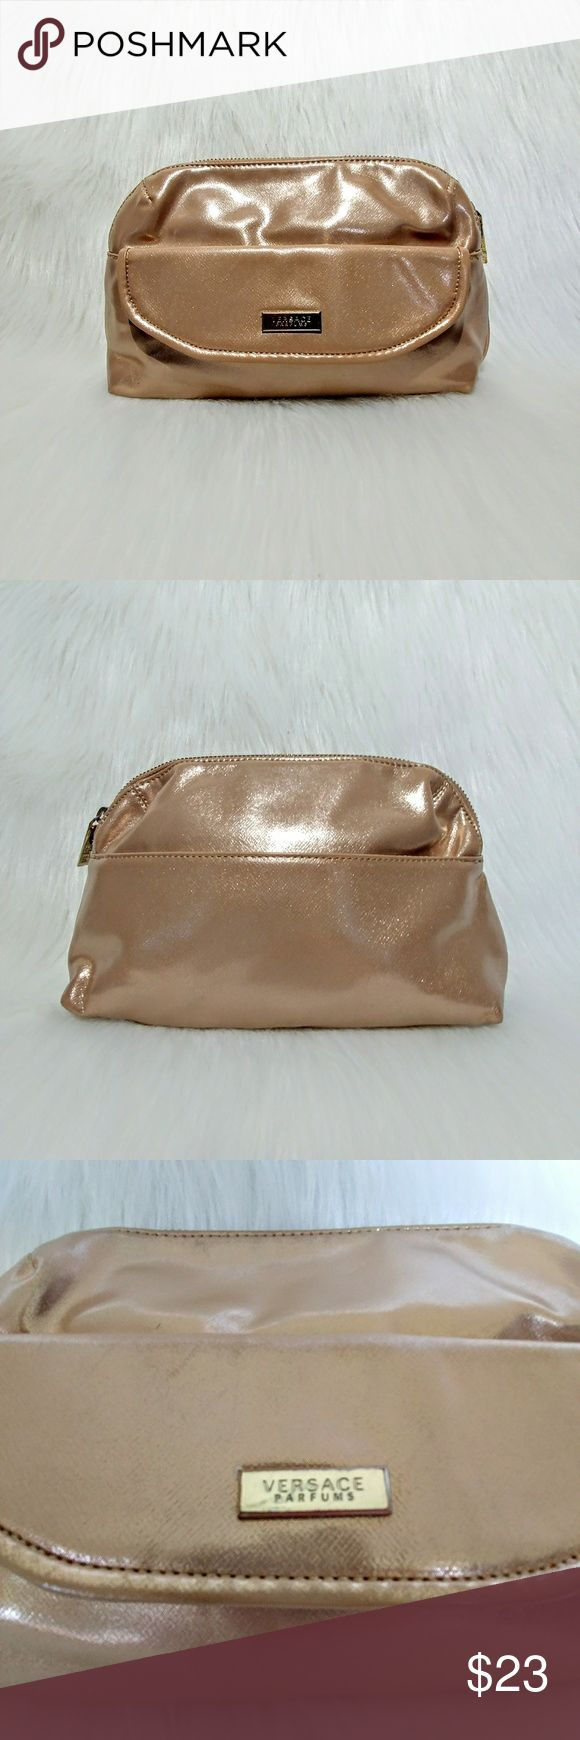 """Versace Bag/Clutch Versace Parfume bag in rose gold. This zip closure bag measures 10.5"""" x 7"""" and can be used as a cosmetic bag or clutch. Lots of space including a front button closure pocket & an additional exterior pocket on the back. Interior lining is in perfect condition, zippers have a few small scratches. Versace Bags"""